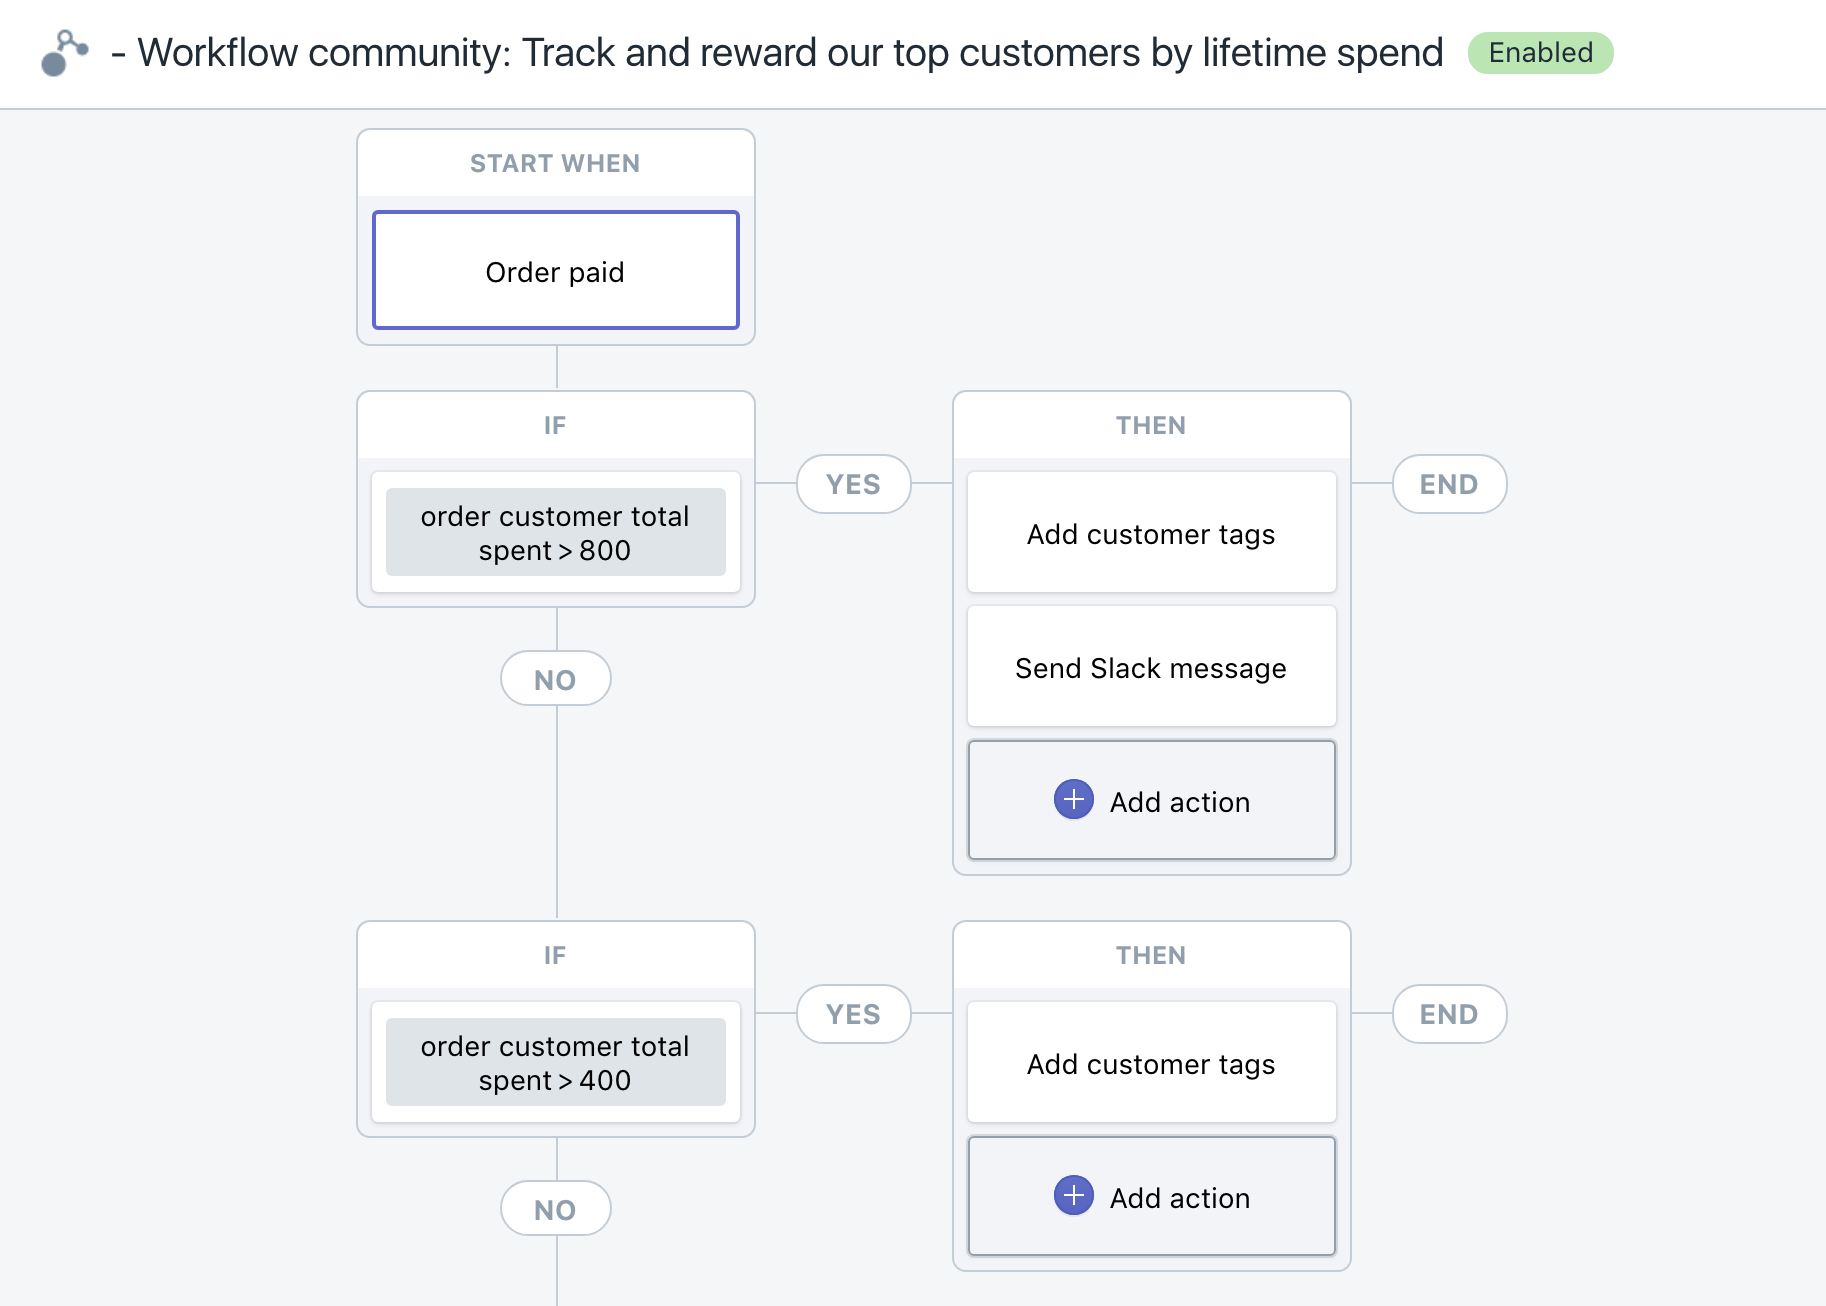 Track and reward your top customers with ecommerce automation software